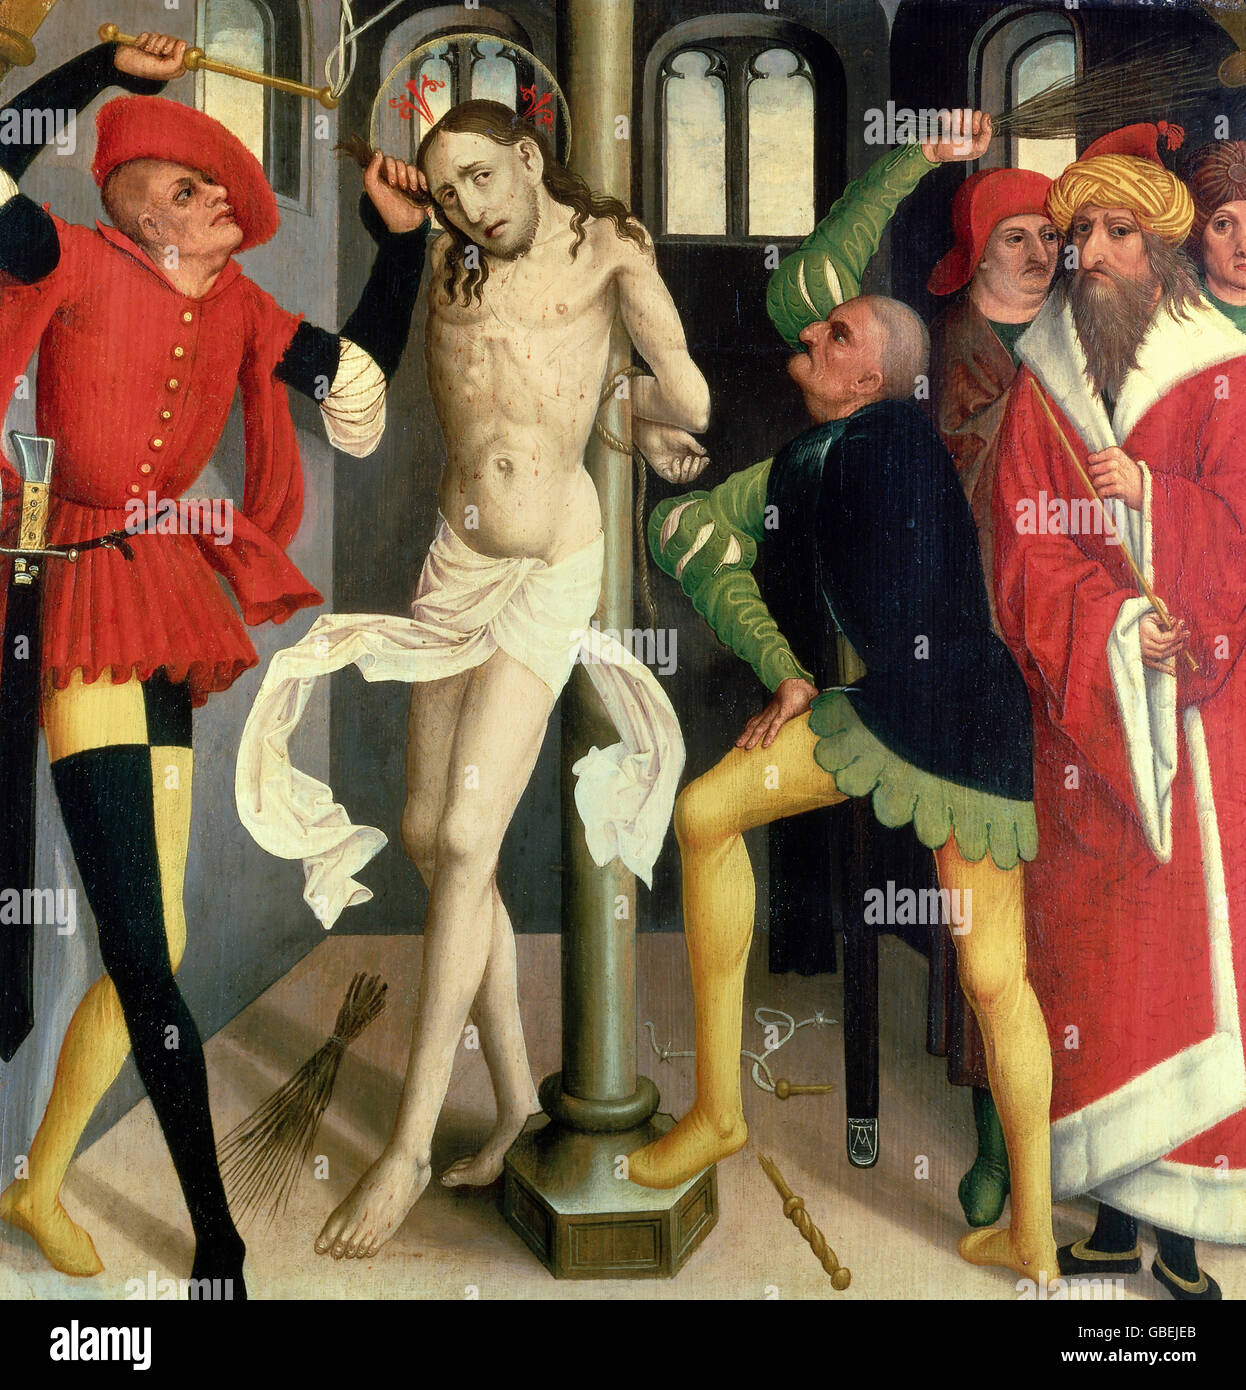 fine arts, religious art, Jesus Christ, passion, painting 'The Flagellation of Christ', oil on panel, double - Stock Image